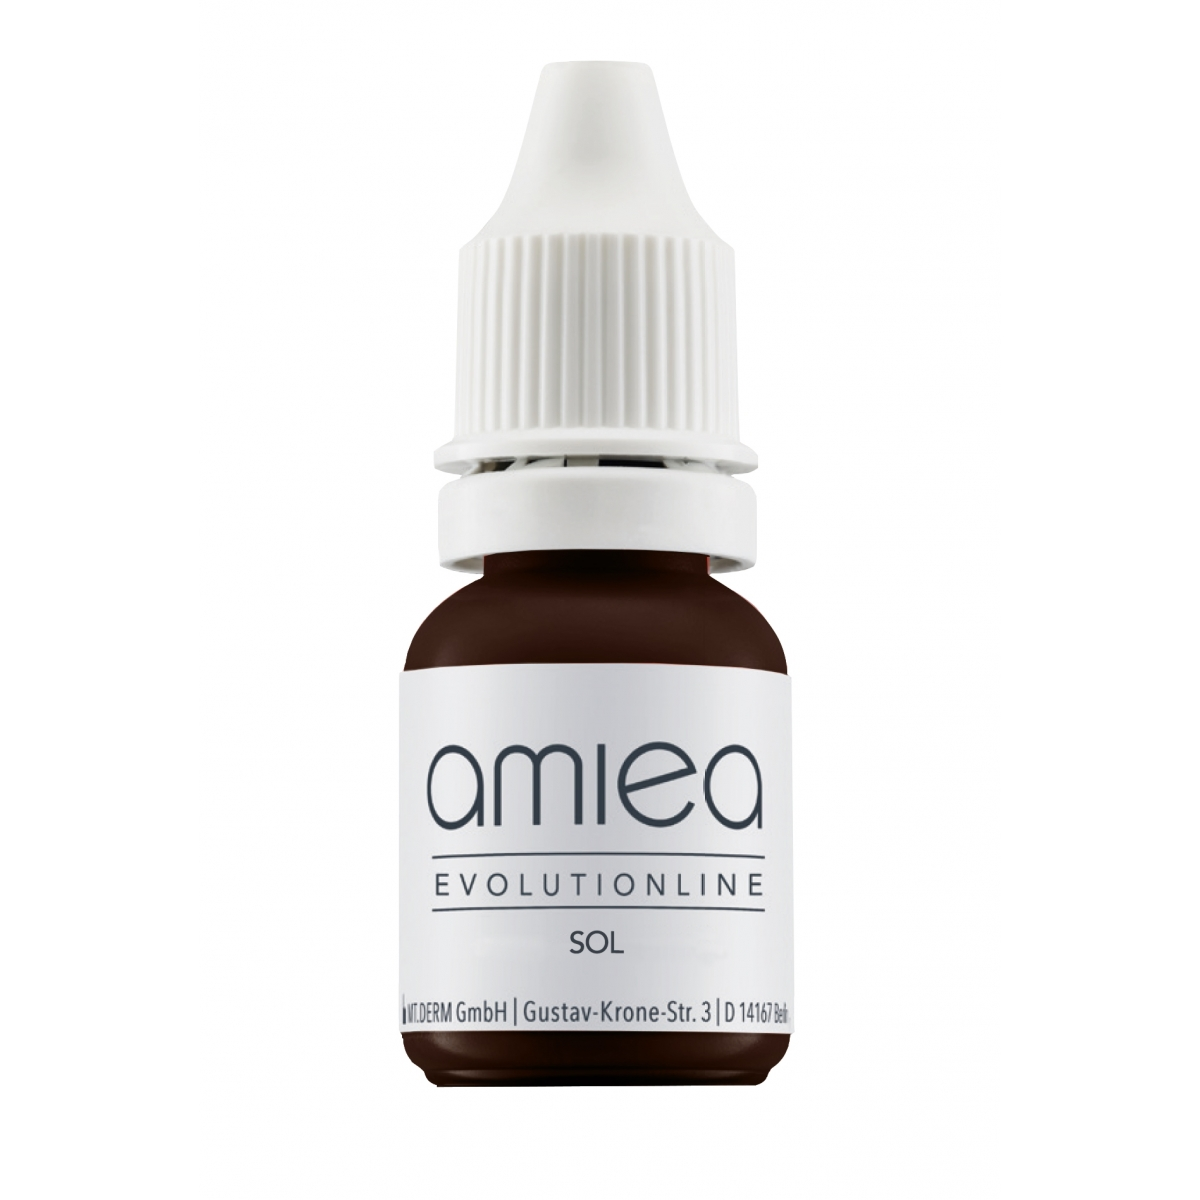 PIGMENTS AMIEA EVOLUTIONLINE SOL, 5 ml